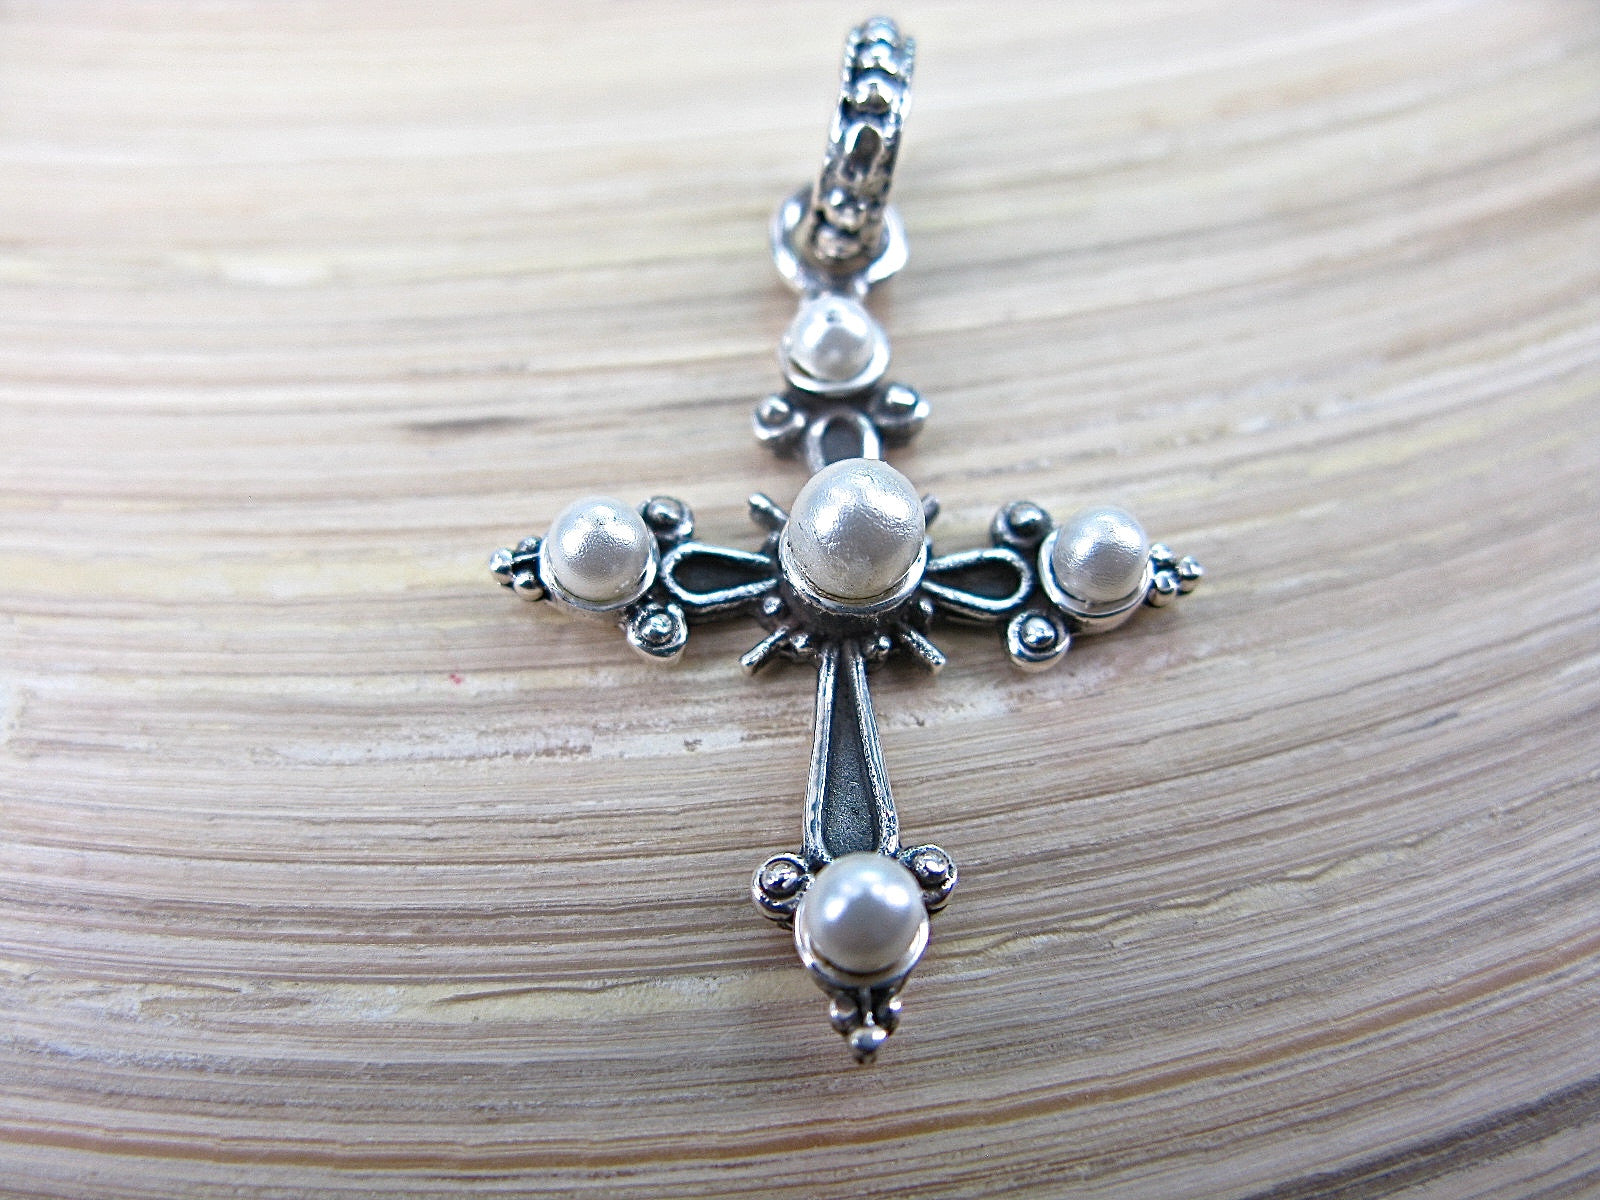 Cross Pearl Oxidized 925 Sterling Silver Pendant Pendant Faith Owl - Faith Owl